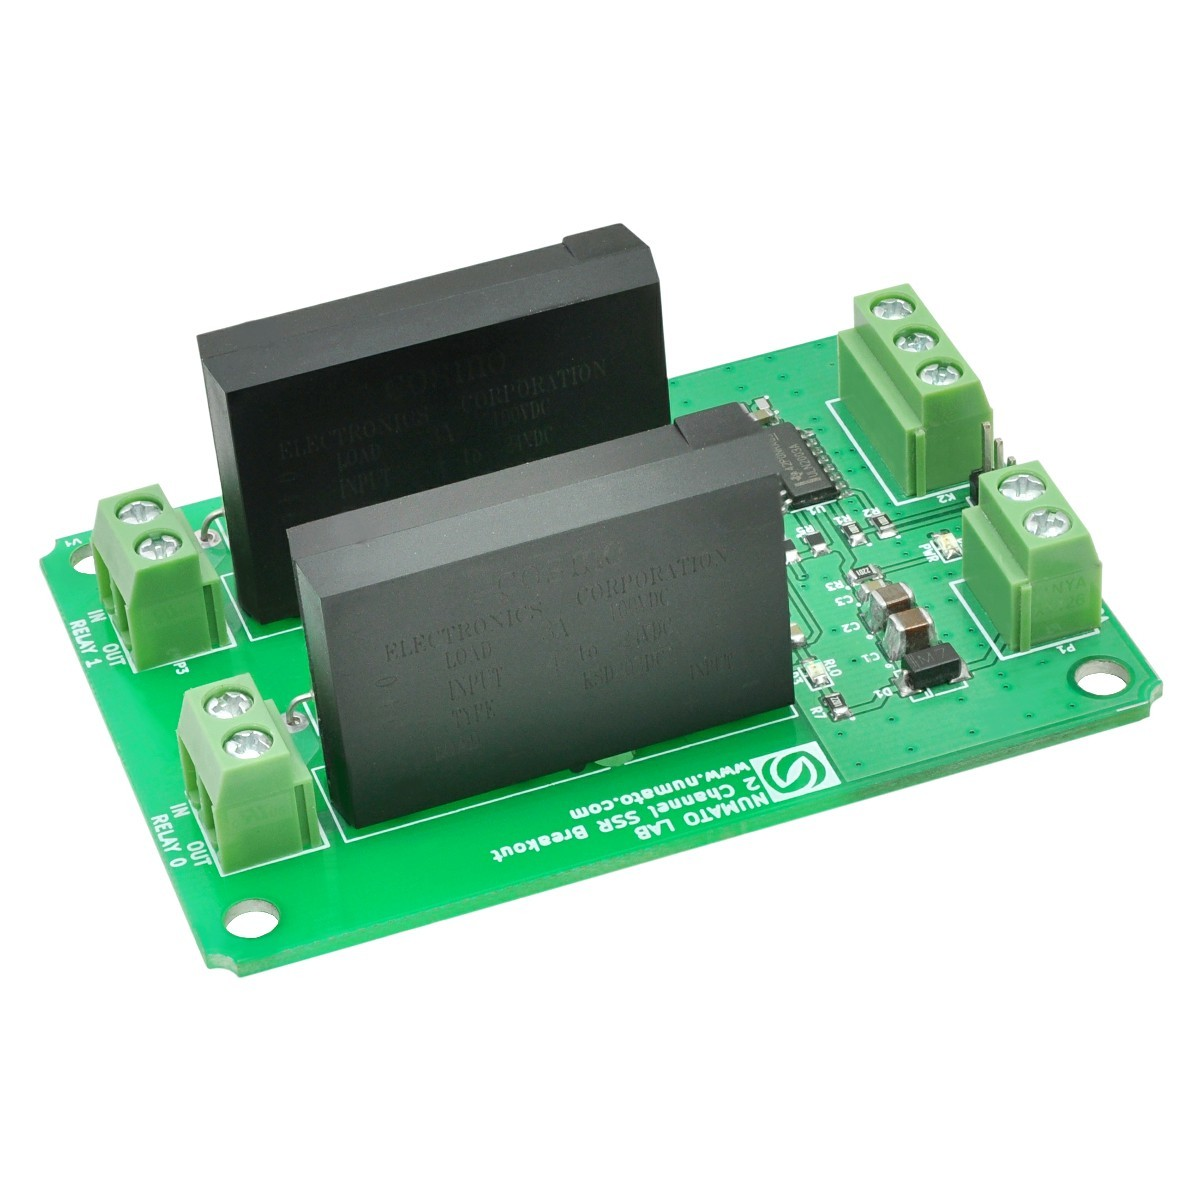 2 Channel Ac Solid State Relay Controller Board Schematic